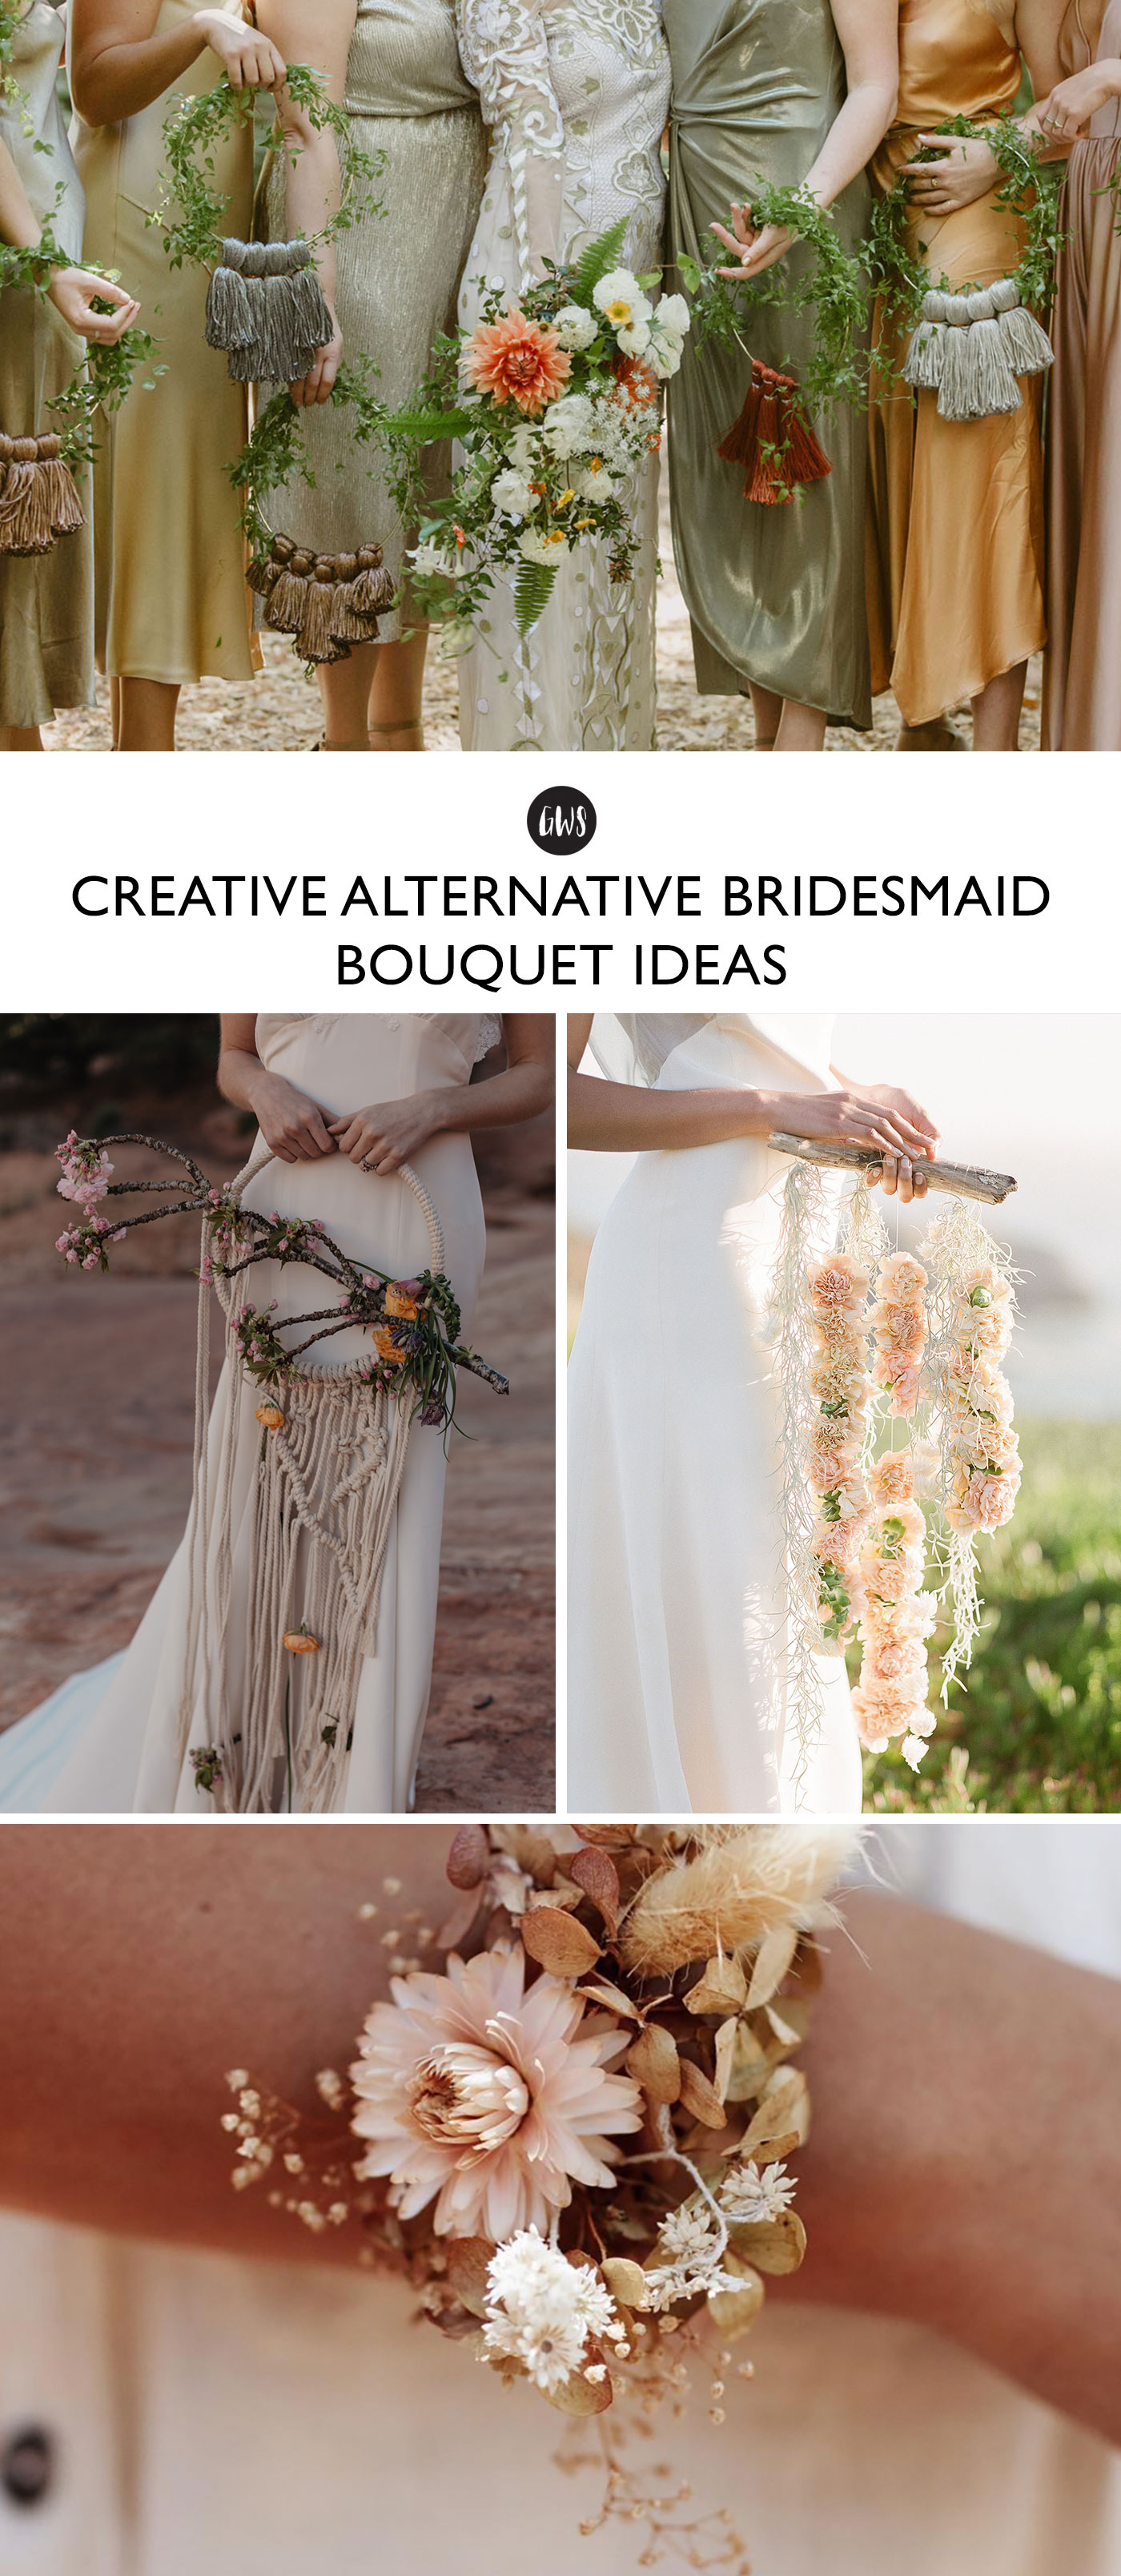 alternative bouquets ideas for bridesmaids